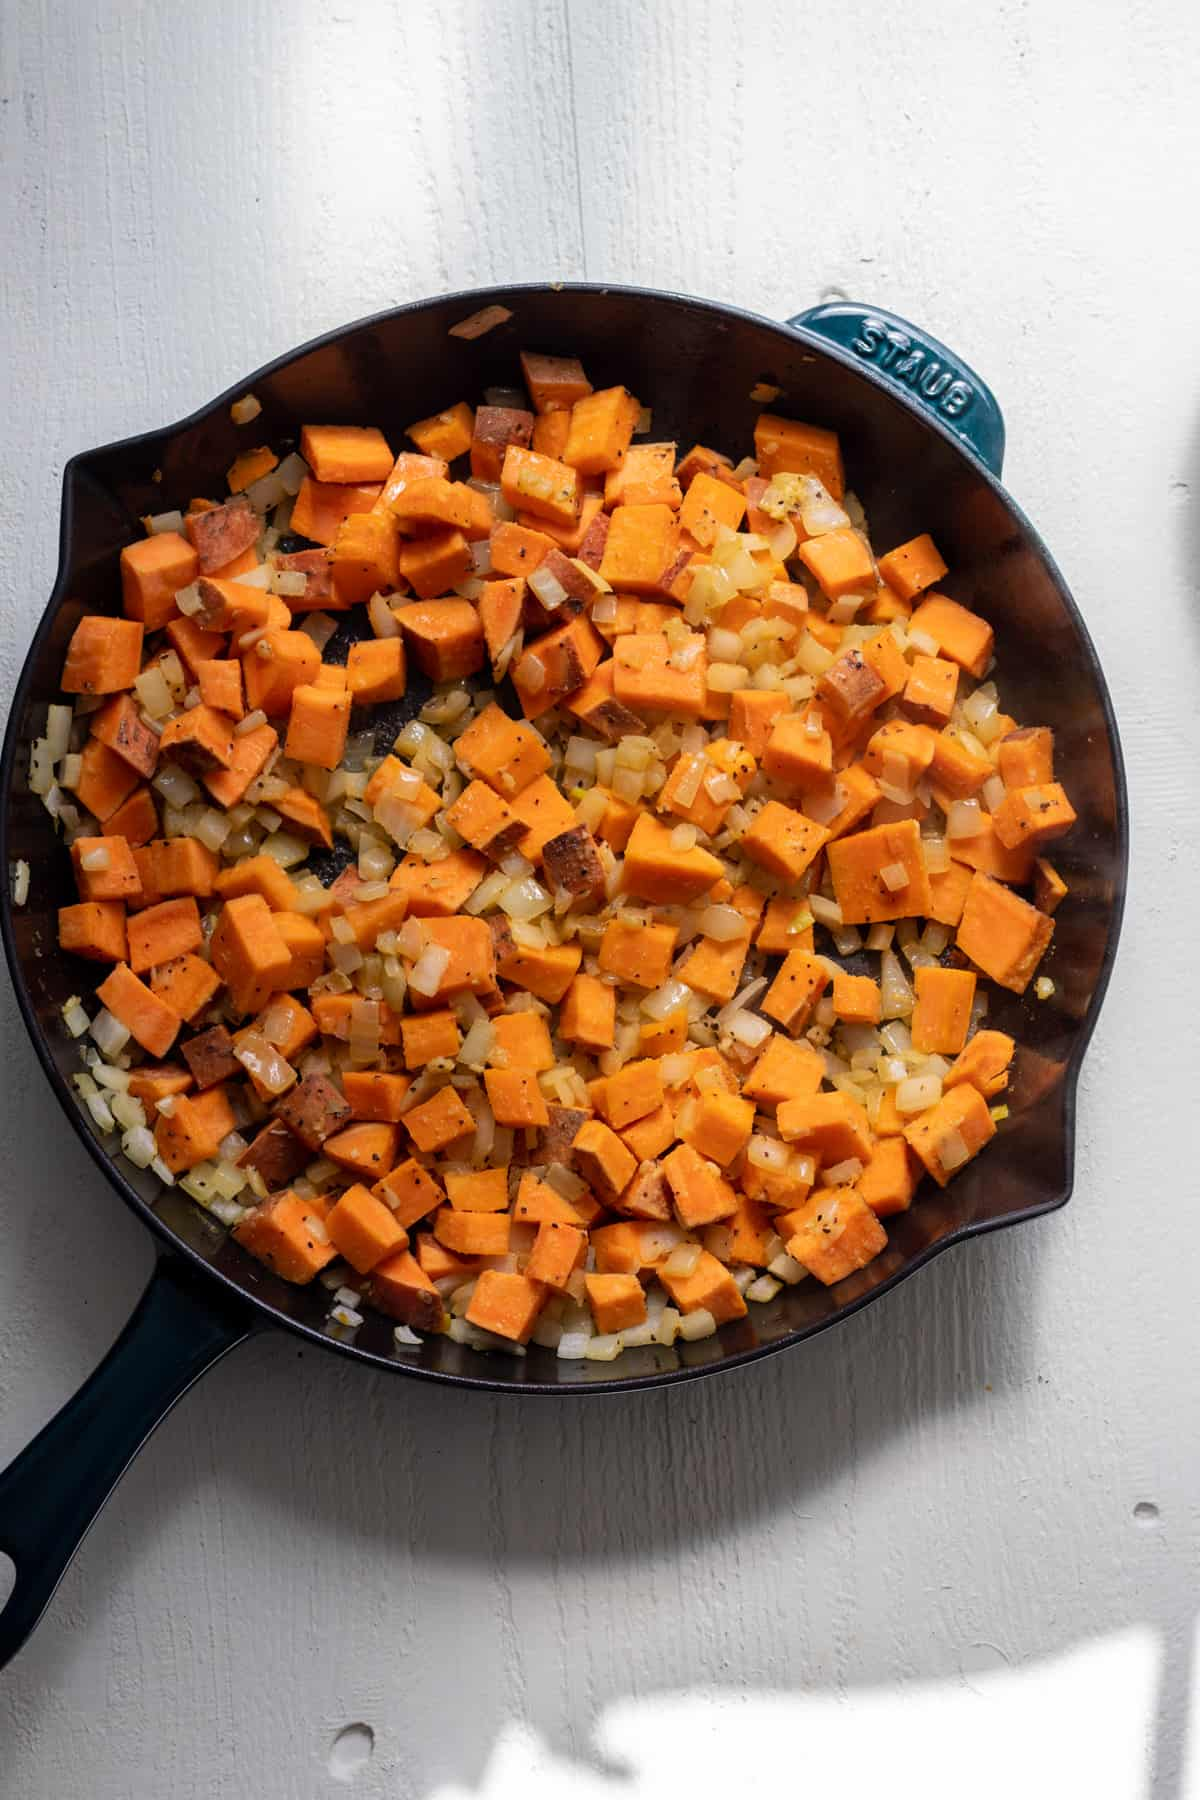 Sweet potato sauteed with onion in skillet.